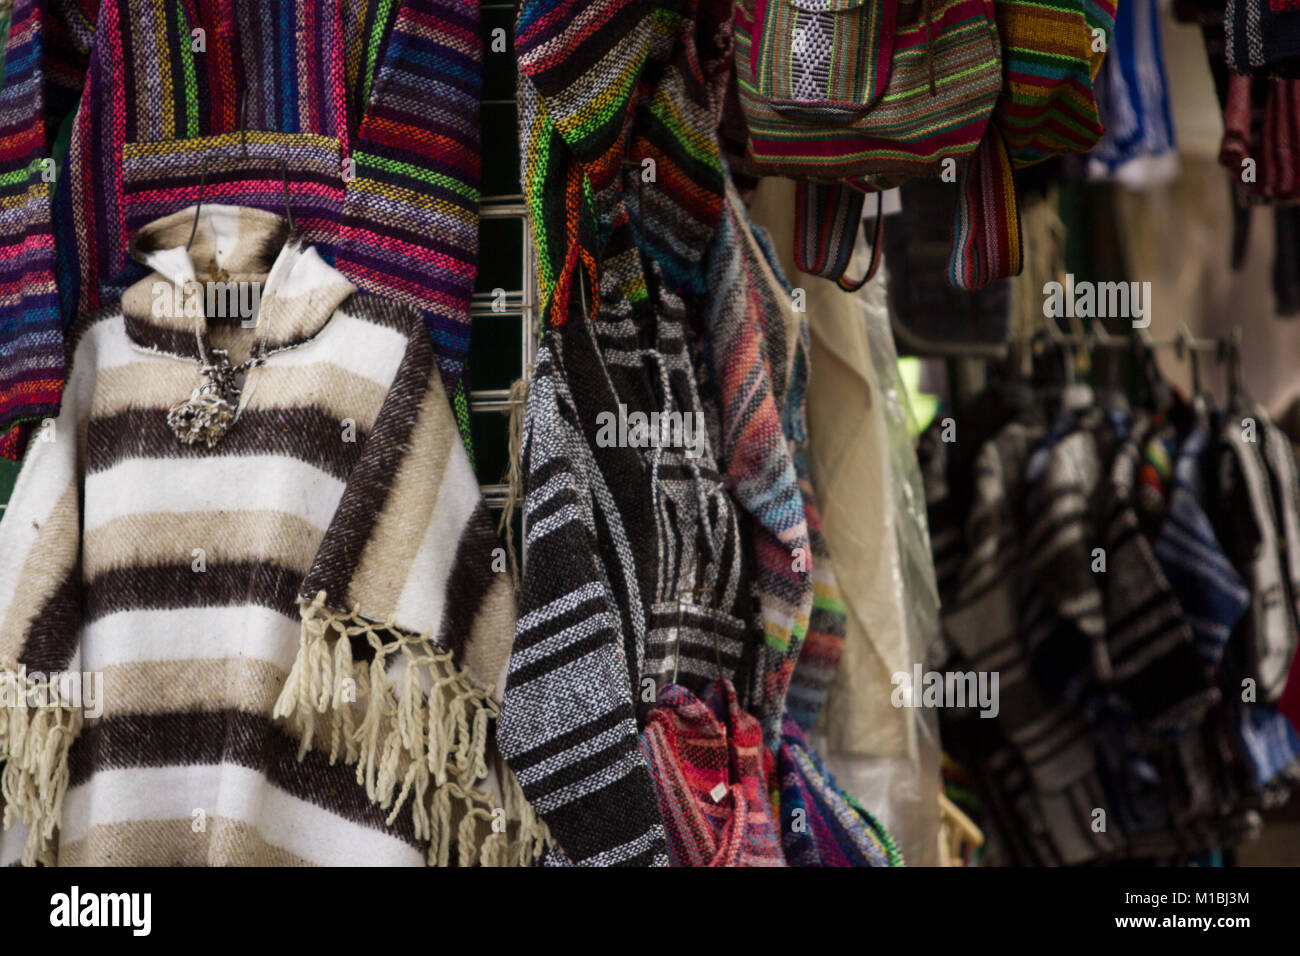 Mexican poncho in exhibition in the market - Stock Image